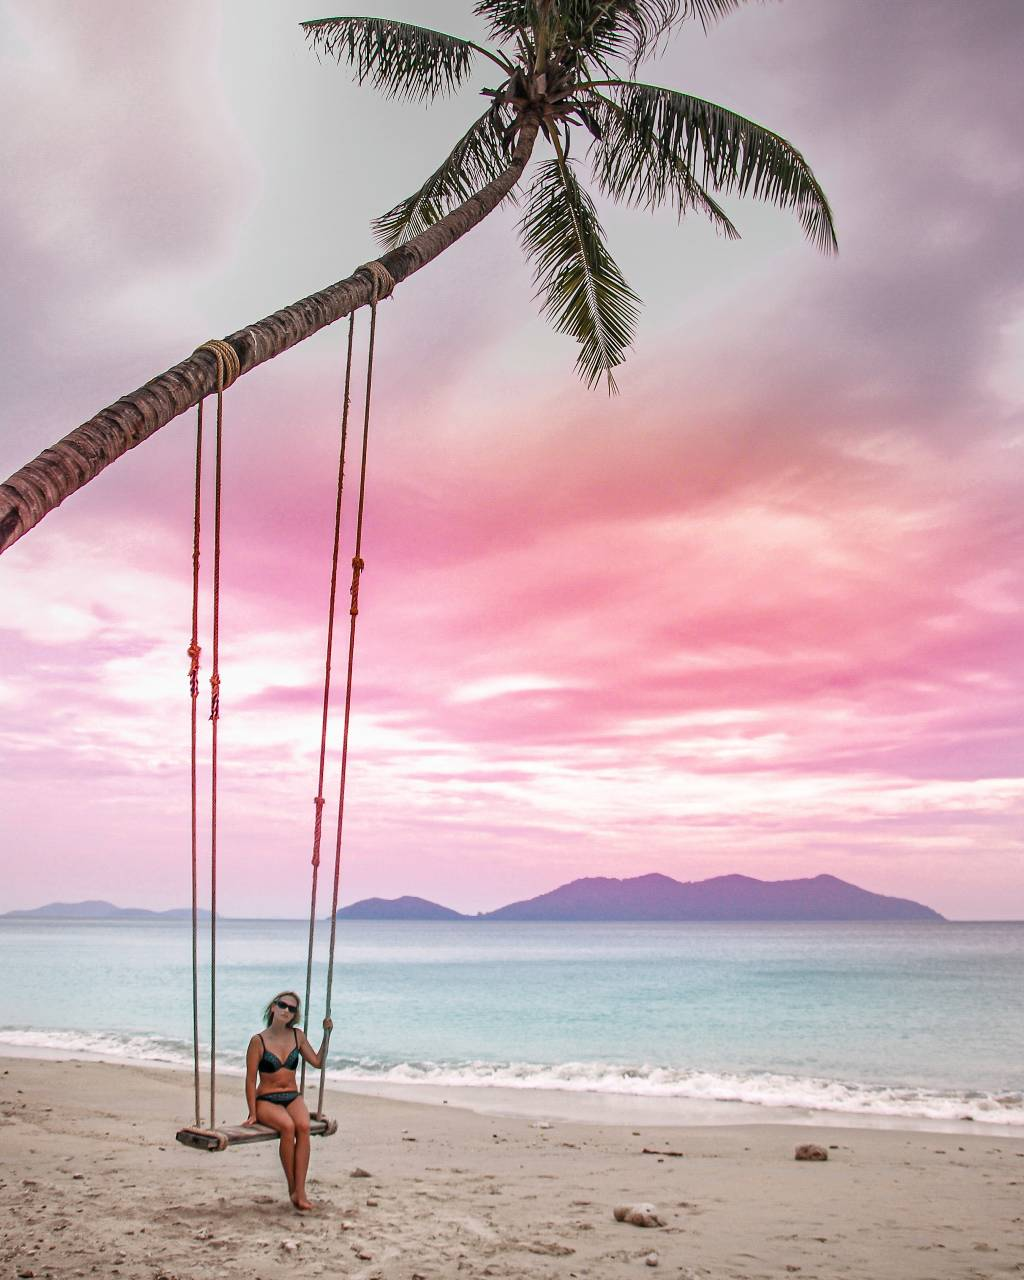 Woman on swing at sunset on Koh Chang in Thailand